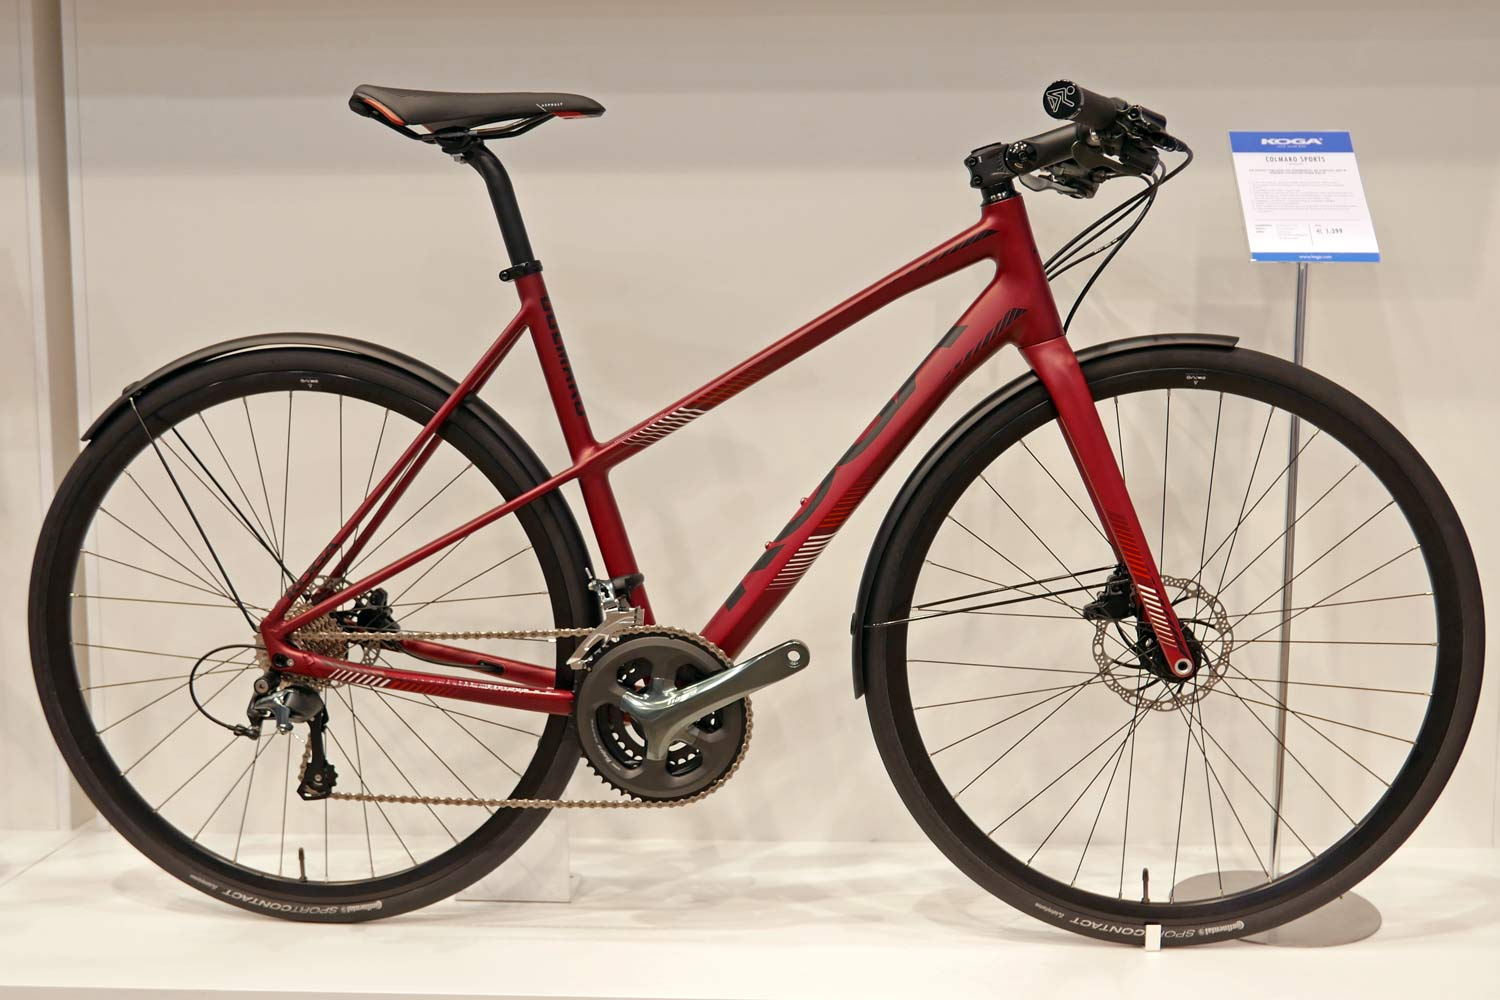 for the same price there is also a mixte frame version called the colamro sport lady it shares the same tiagra triple build with a step through frame - Mixte Frame